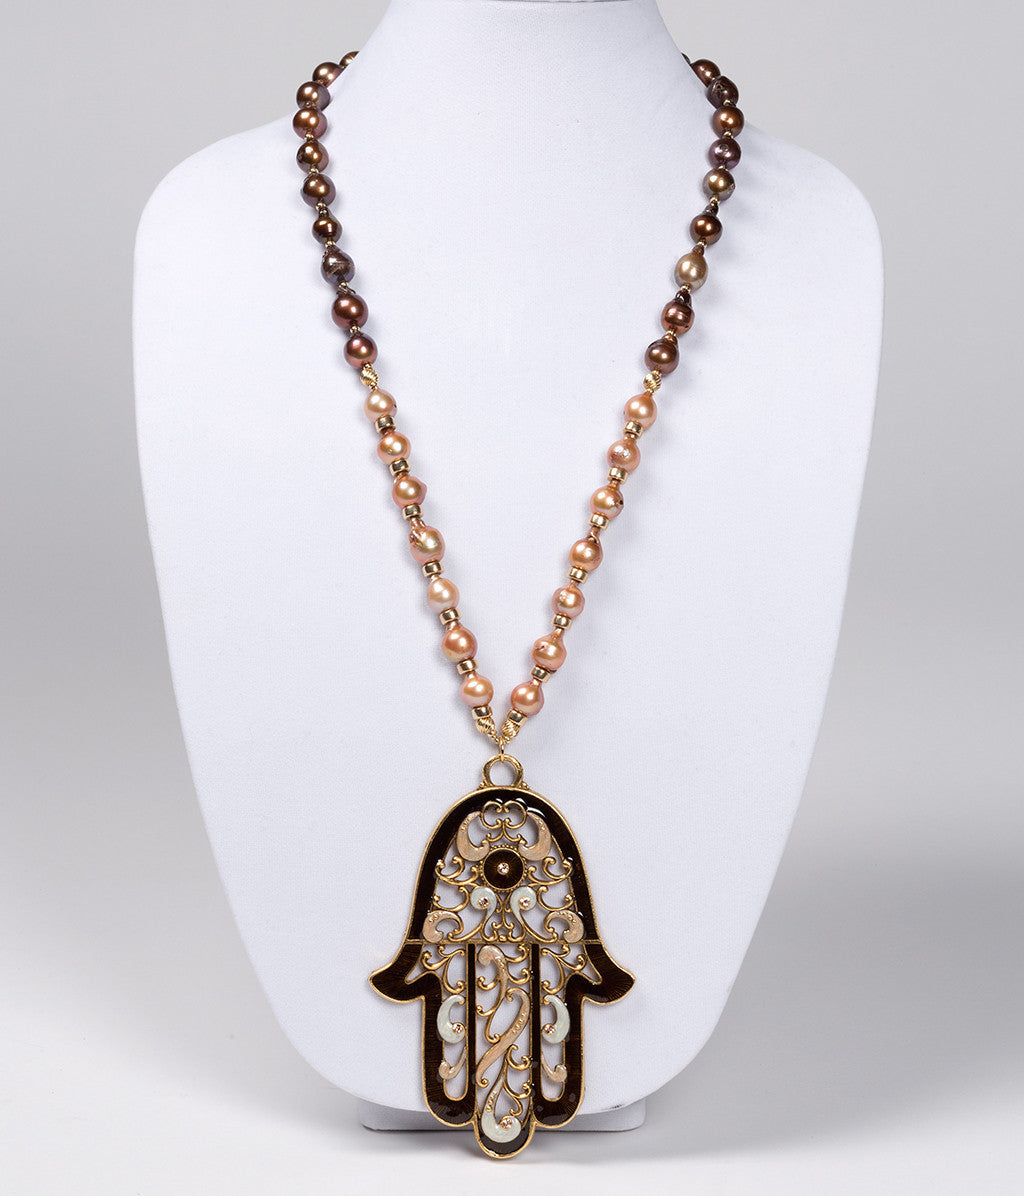 Pearl Necklace with Hamsa Pendant